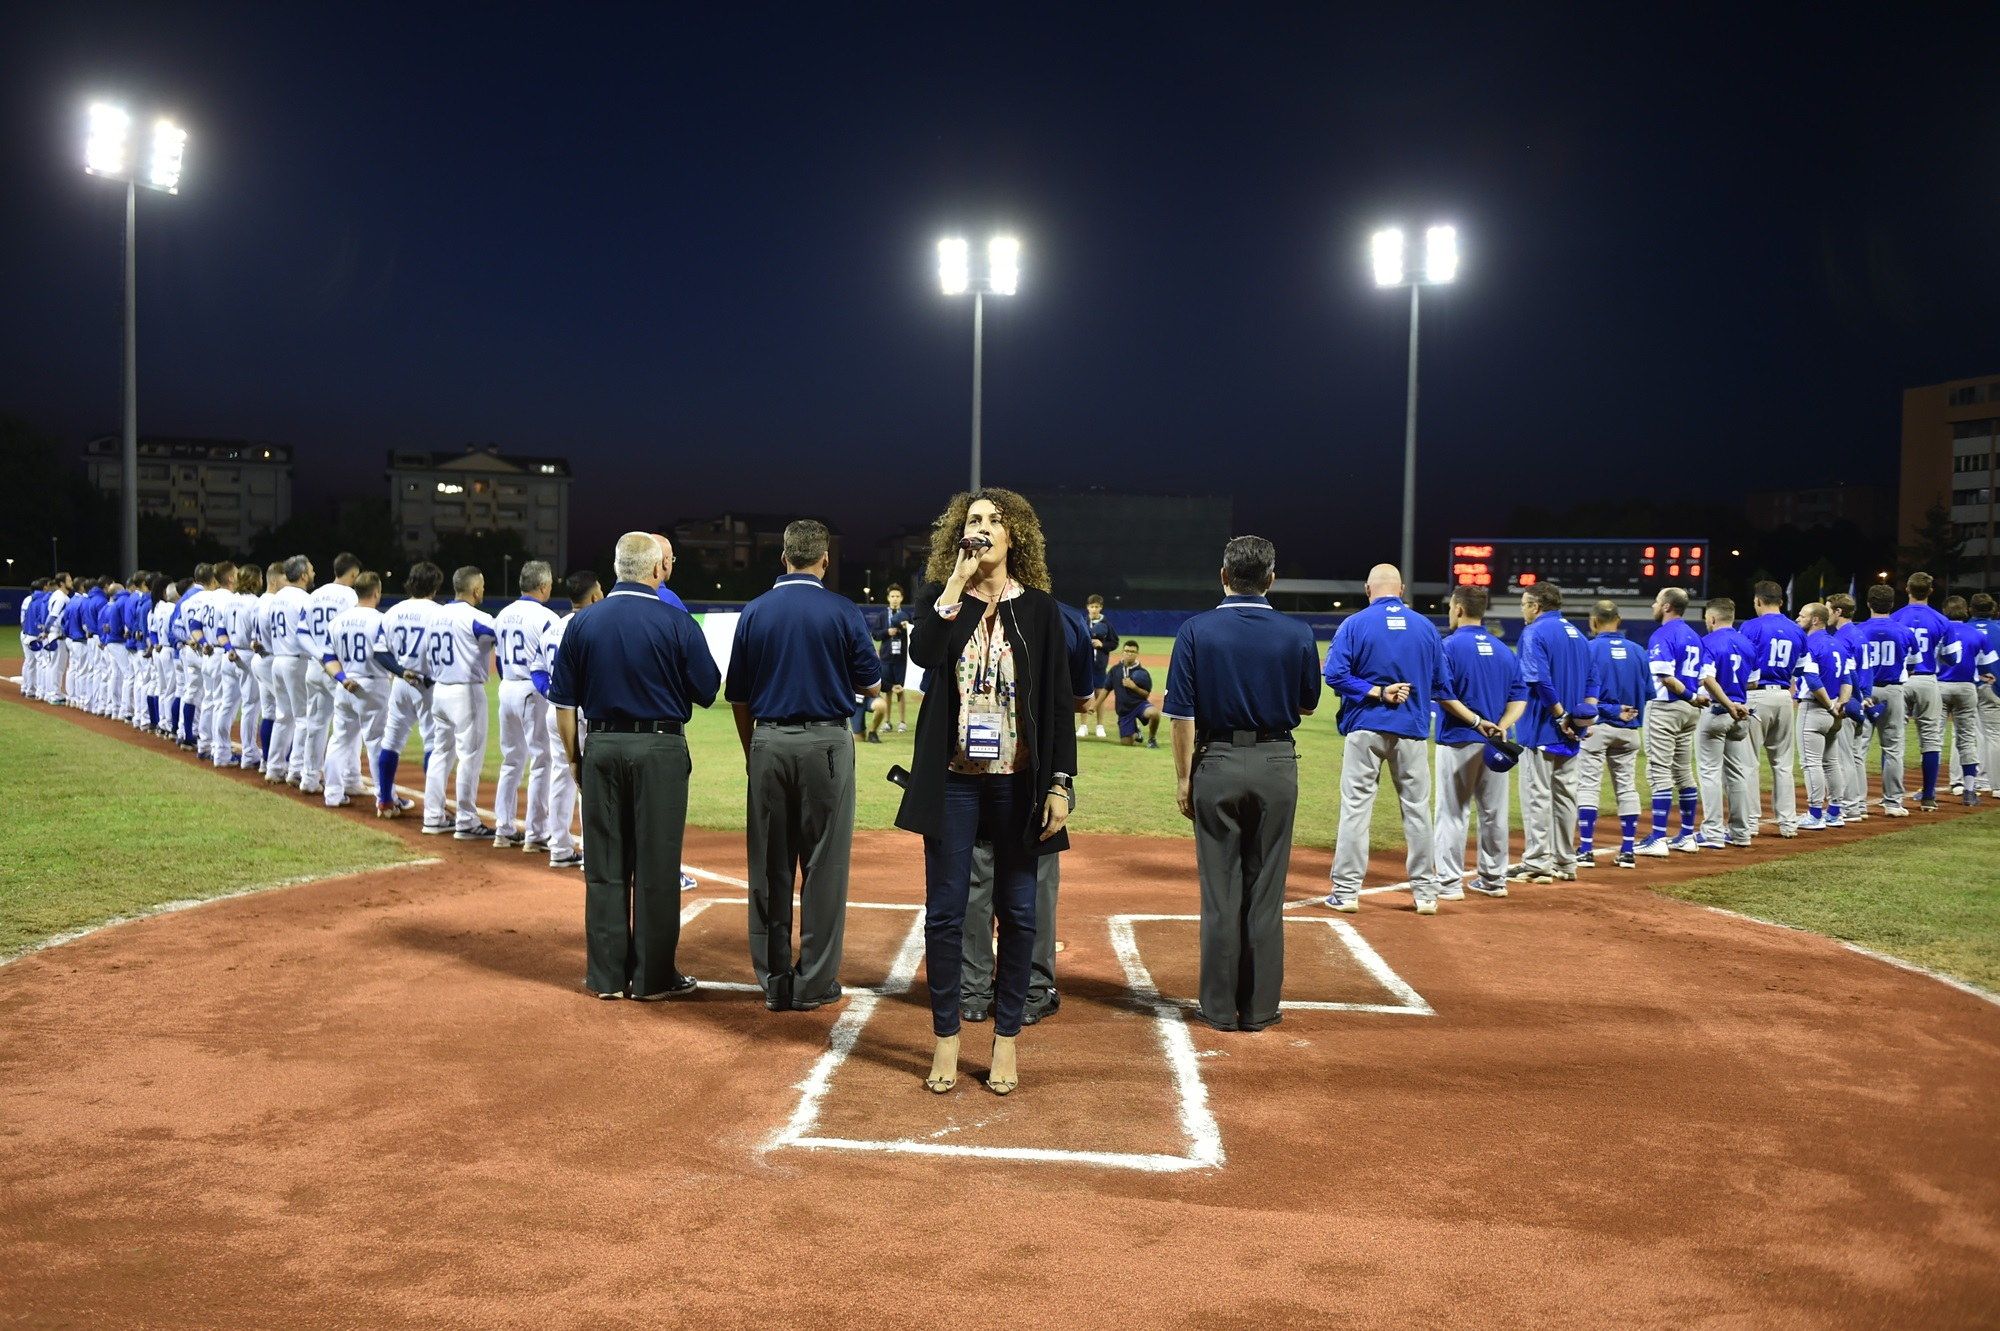 Mascia Foschi sang the Italian National Anthem live